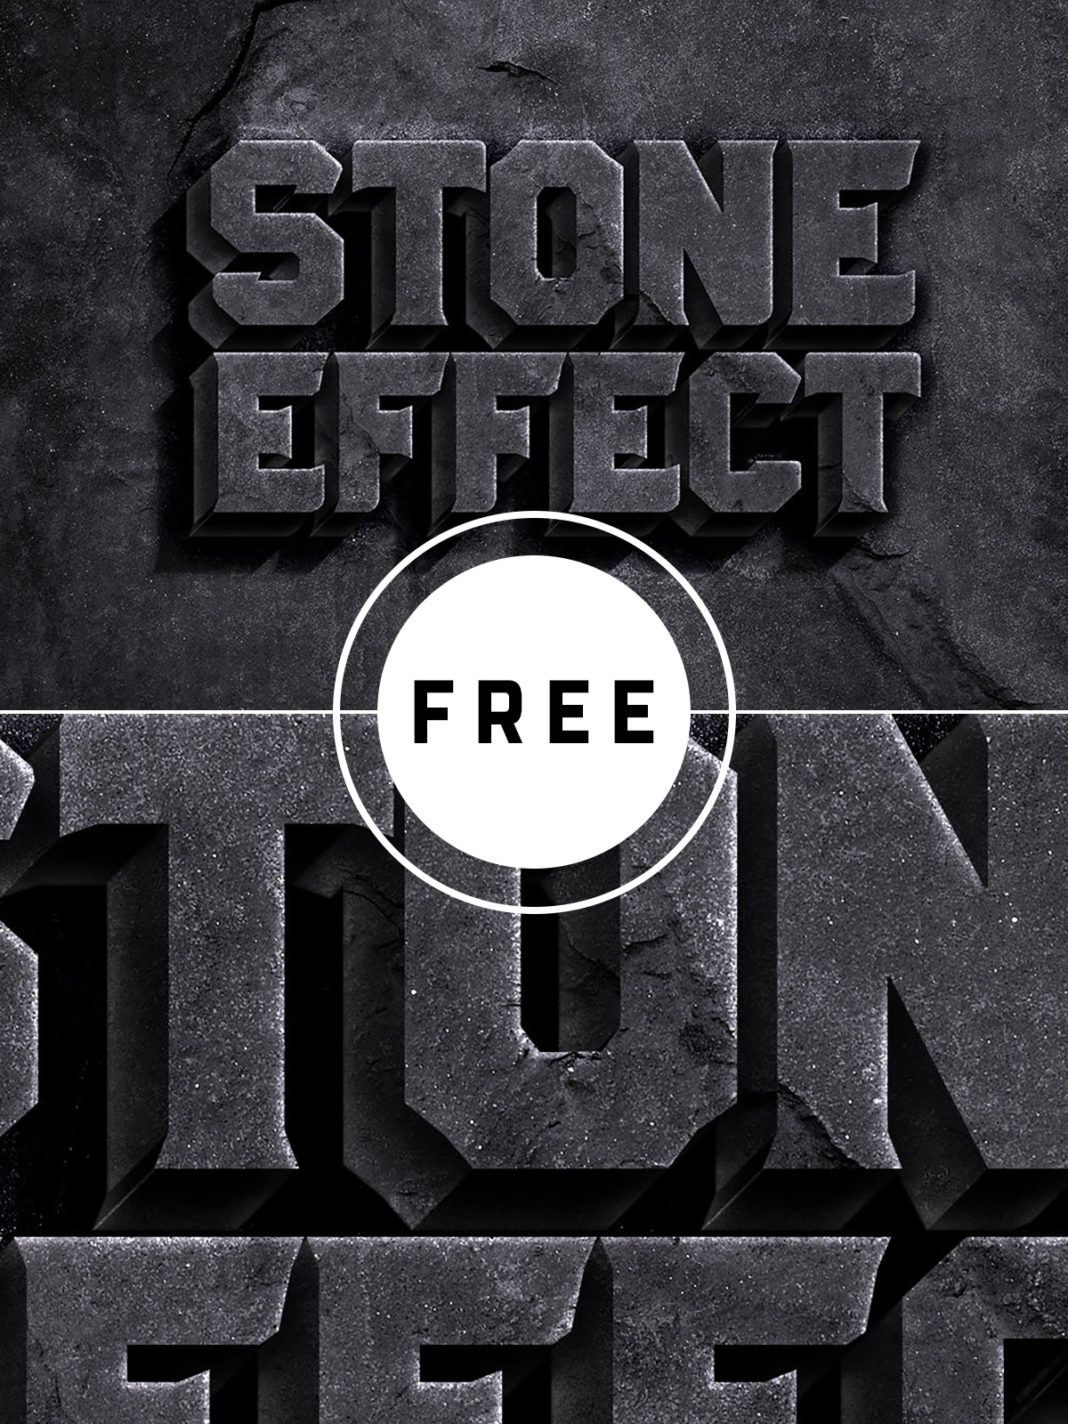 Stone Text Effect PSD Text effects, text